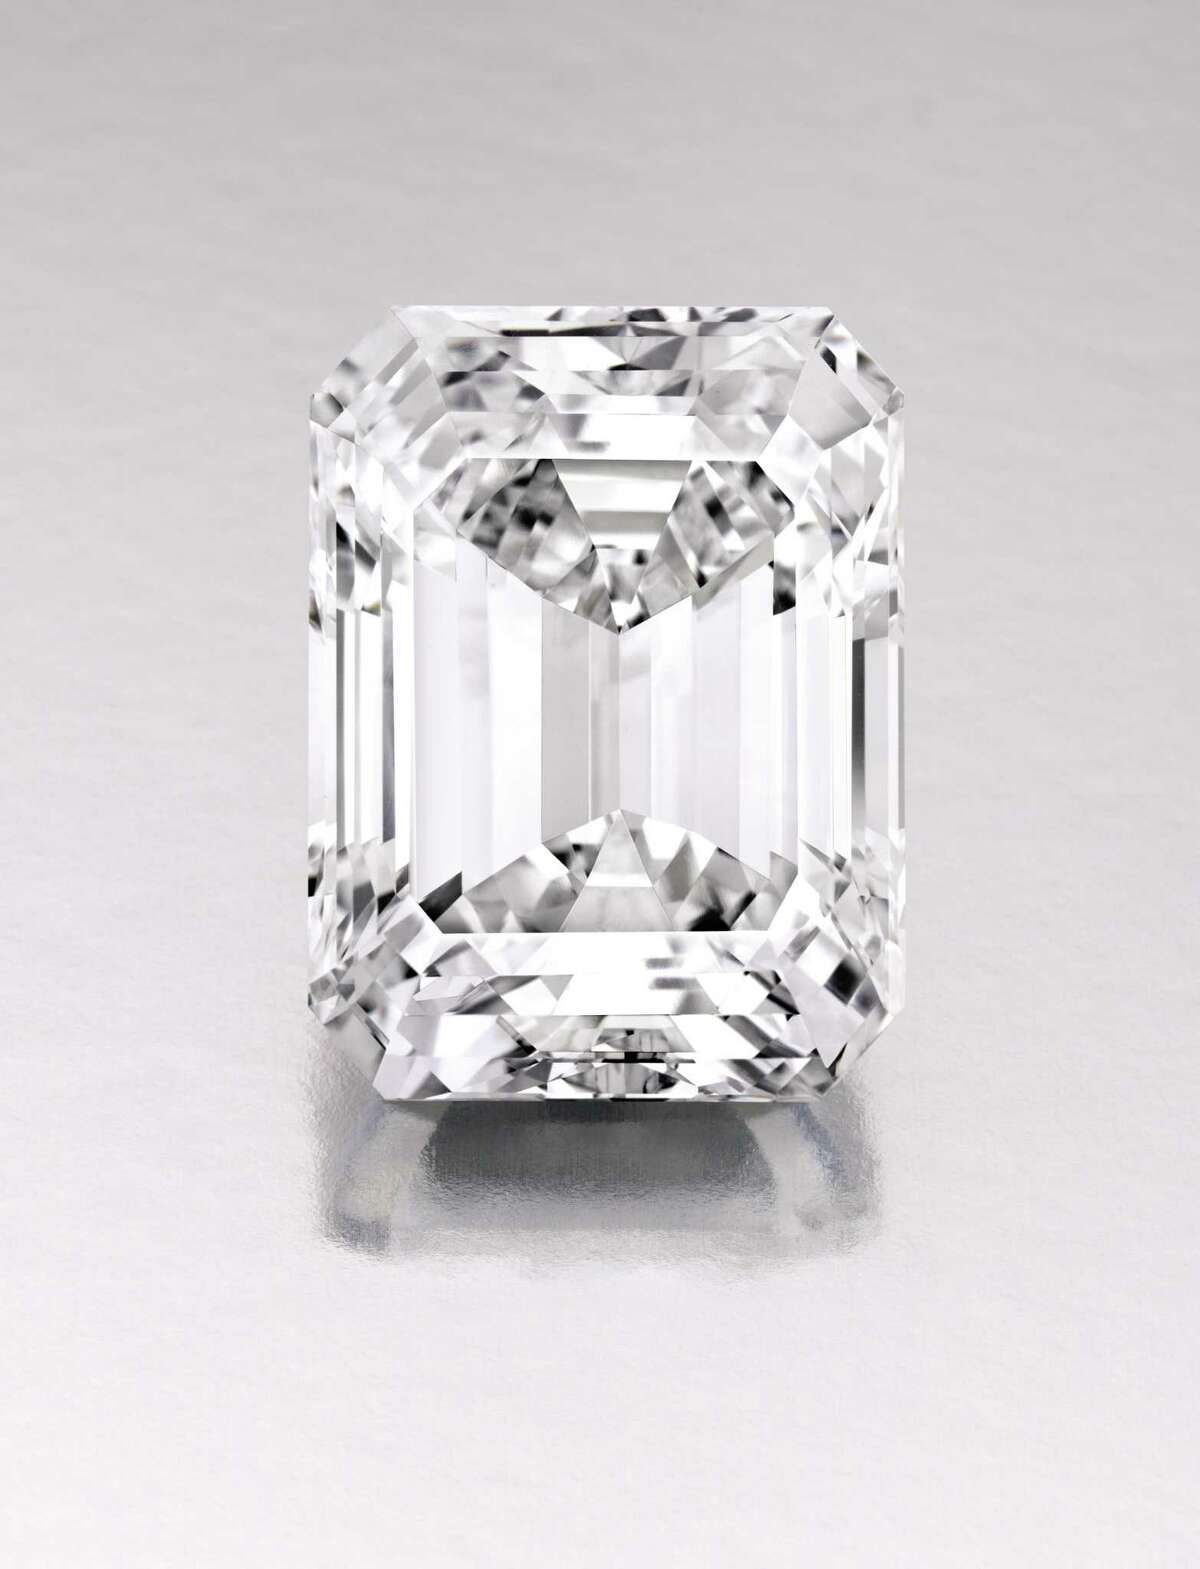 This Jan. 2015 photo provided by Sotheby's shows an emerald-cut white diamond in New York that Sothebyís will auction on April 21 with predictions it could fetch $19 million to $25 million. The rare 100-carat emerald-cut white diamond, which Sothebyís says is internally flawless and is considered ìperfect,î was mined in South Africa and weighed over 200 carats in the rough. (AP Photo/Sotheby's)